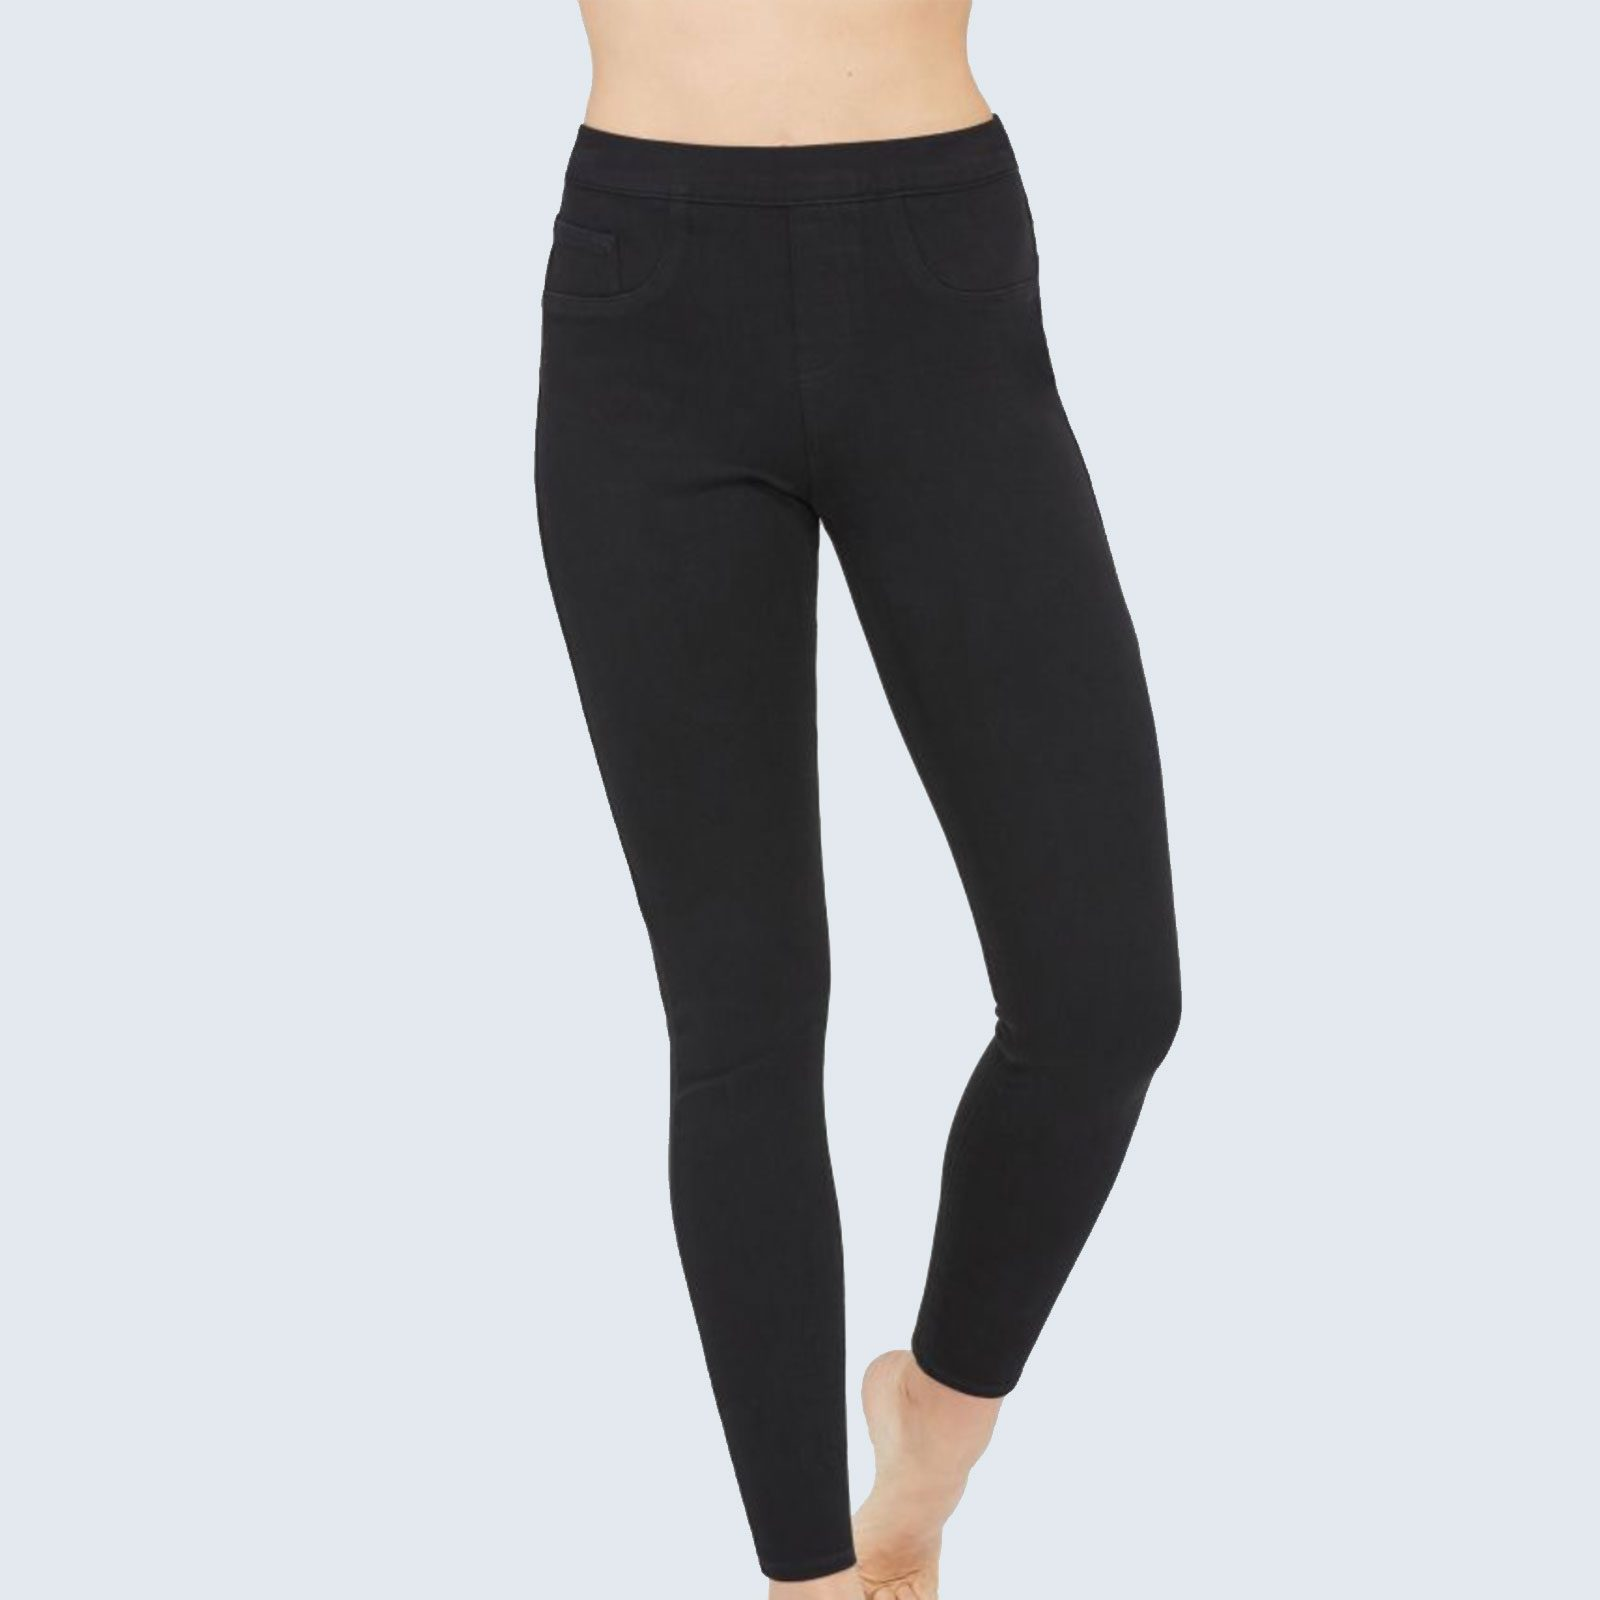 Best Butt-Lifting Leggings that look like Jeans